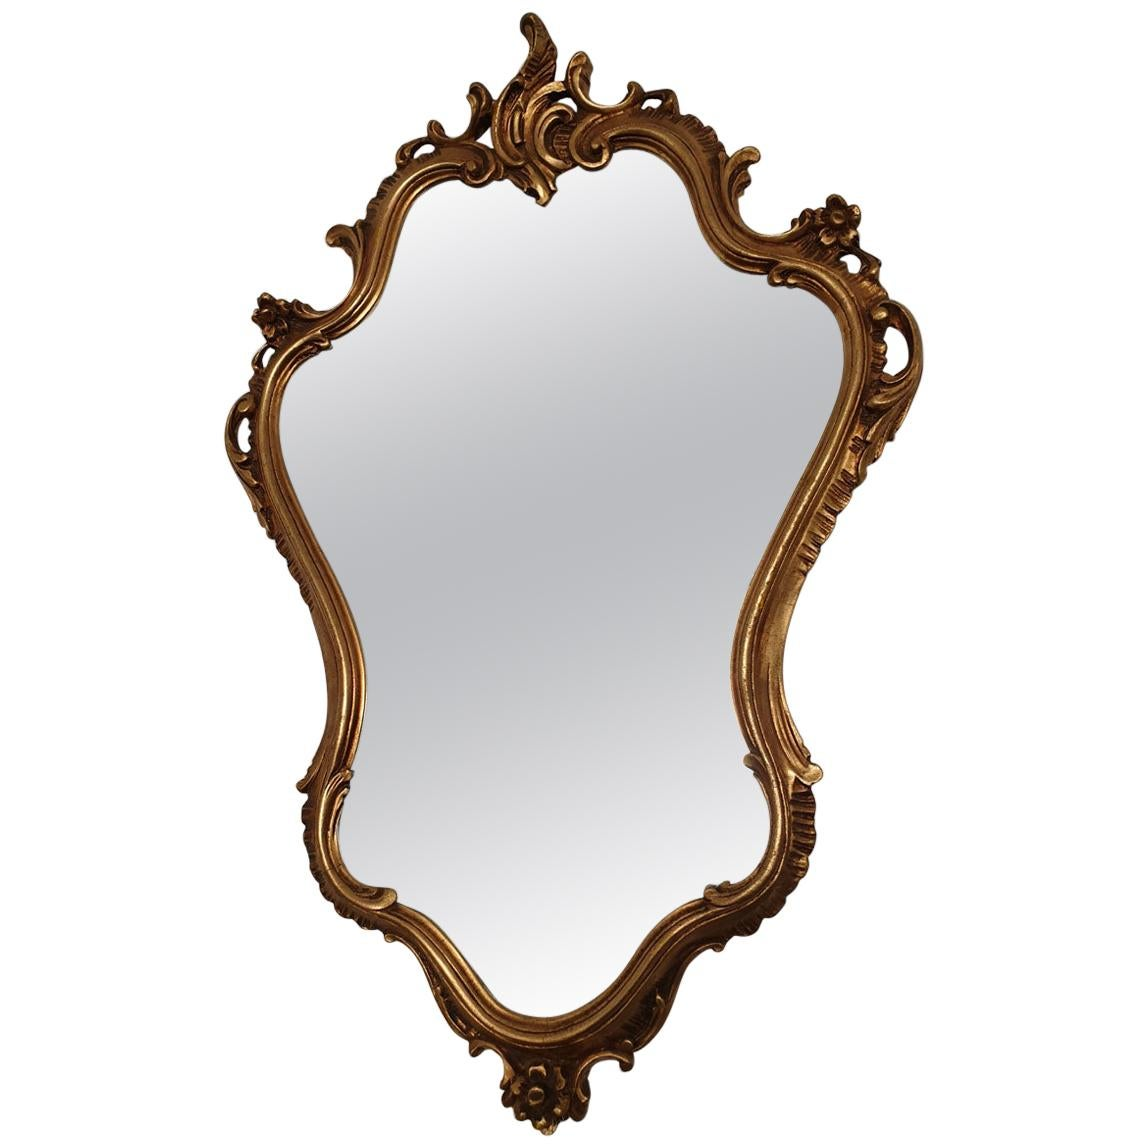 Gilded Wood Rococo Revival Style Mirror with Rocaille Crown